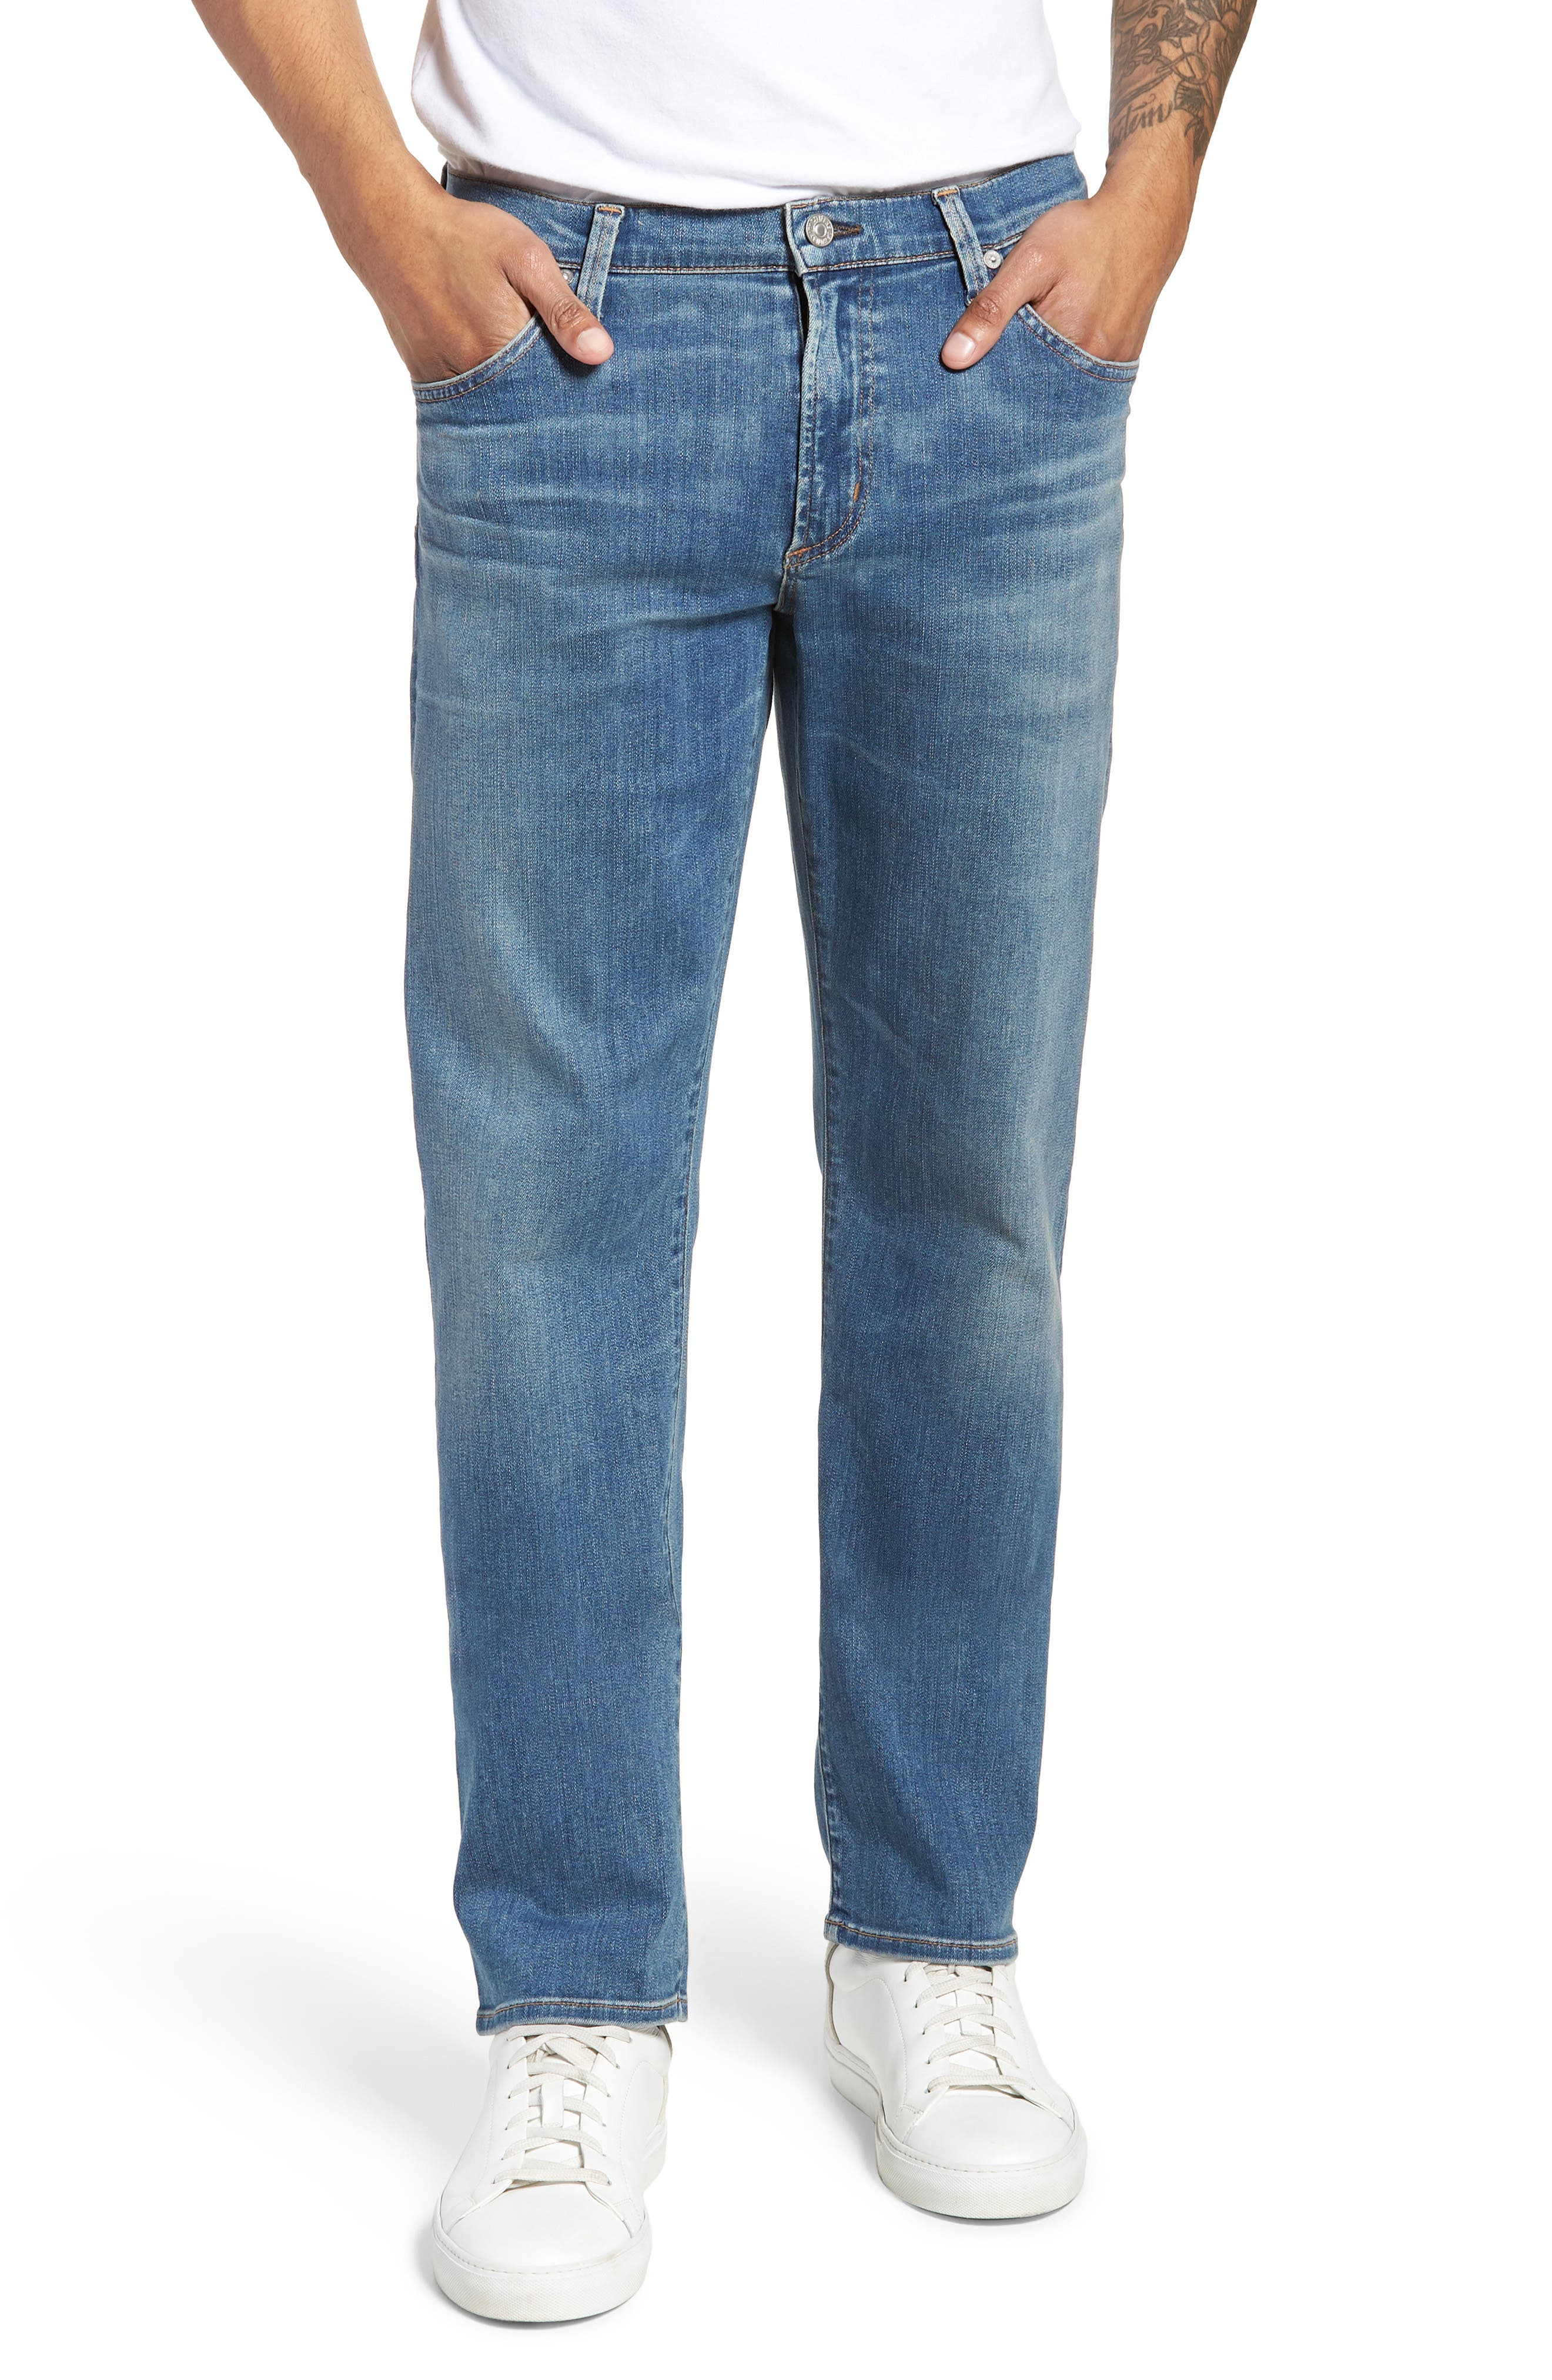 Perform - Gage Slim Straight Leg Jeans,                         Main,                         color, 456